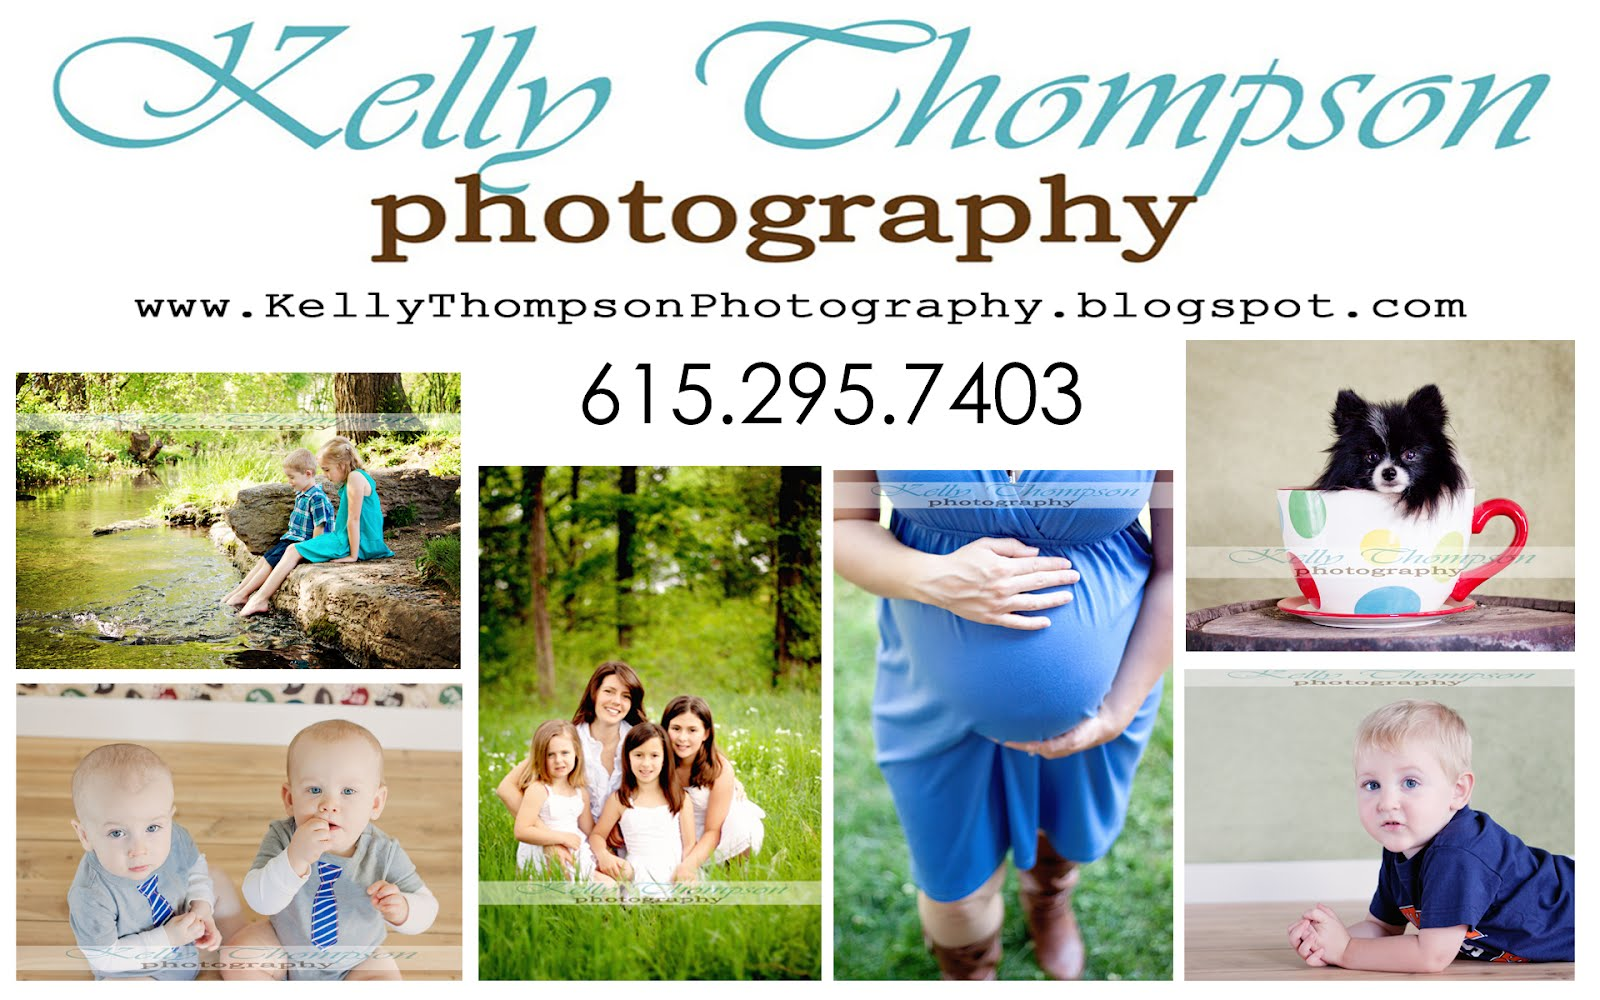 Kelly Thompson Photography